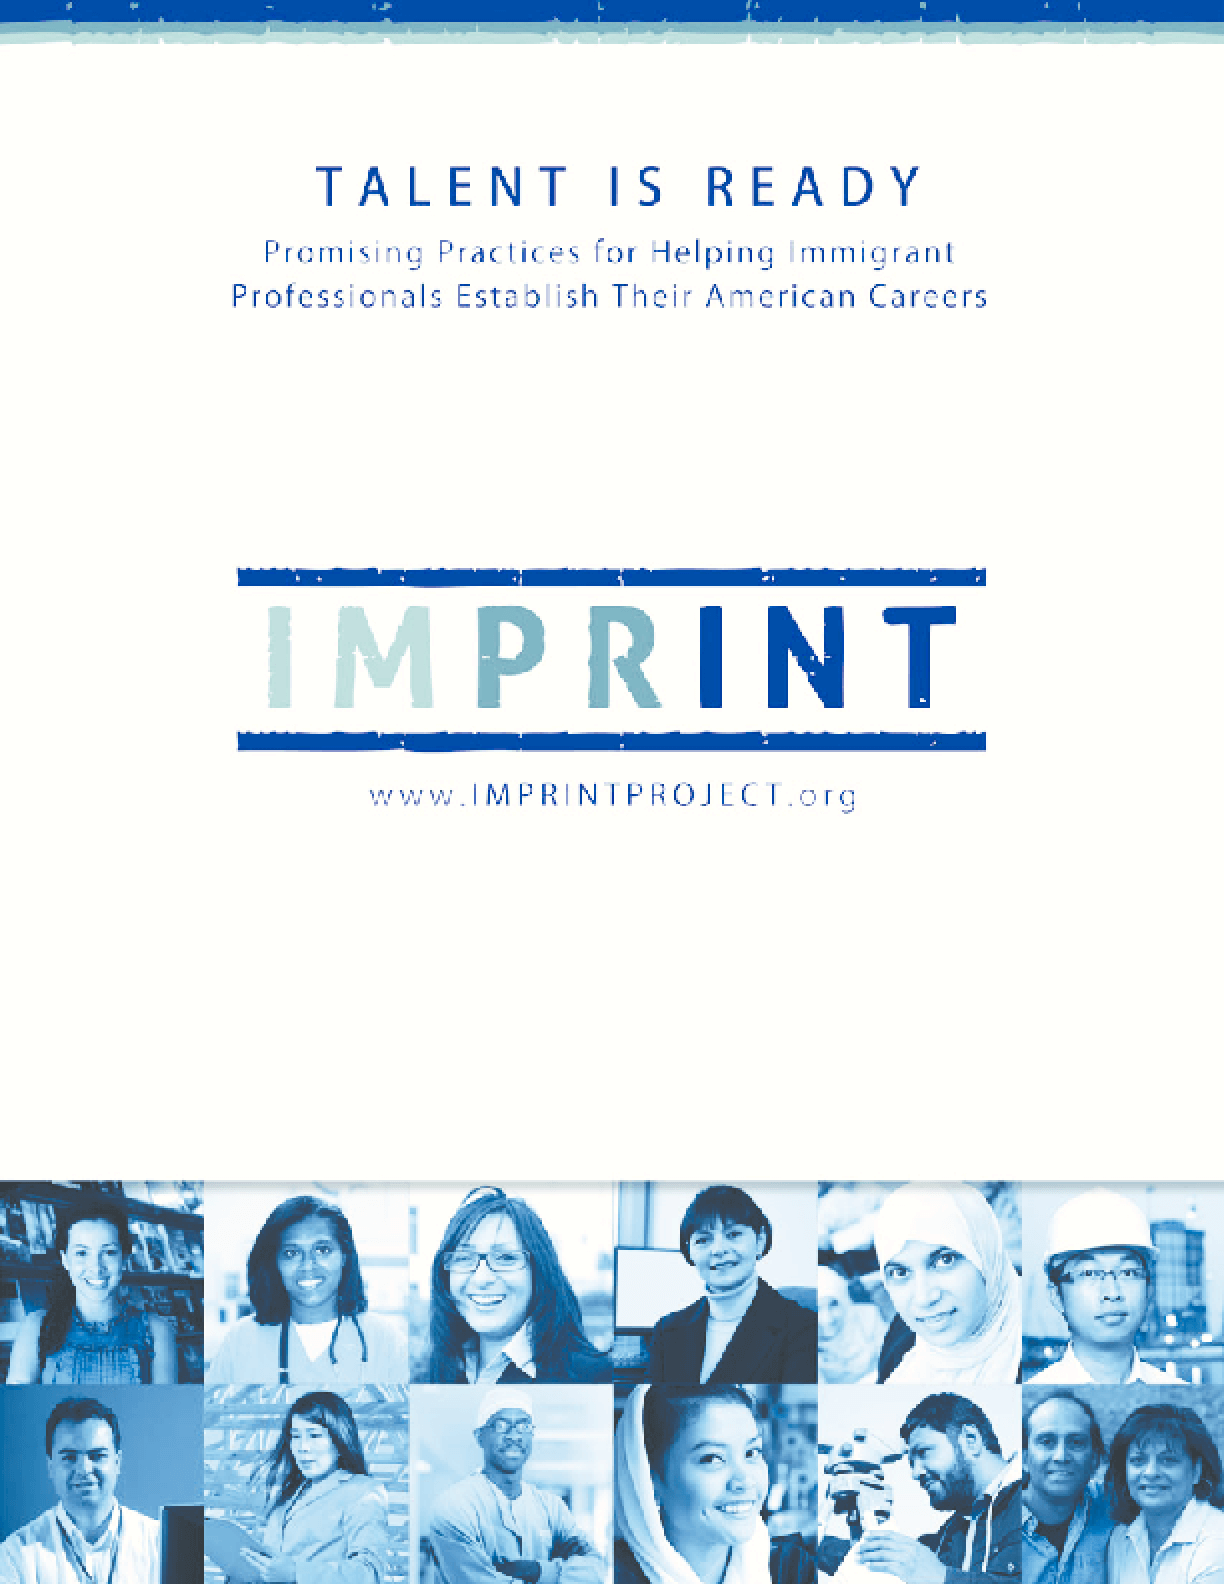 Talent Is Ready: Promising Practices for Helping Immigrant Professionals